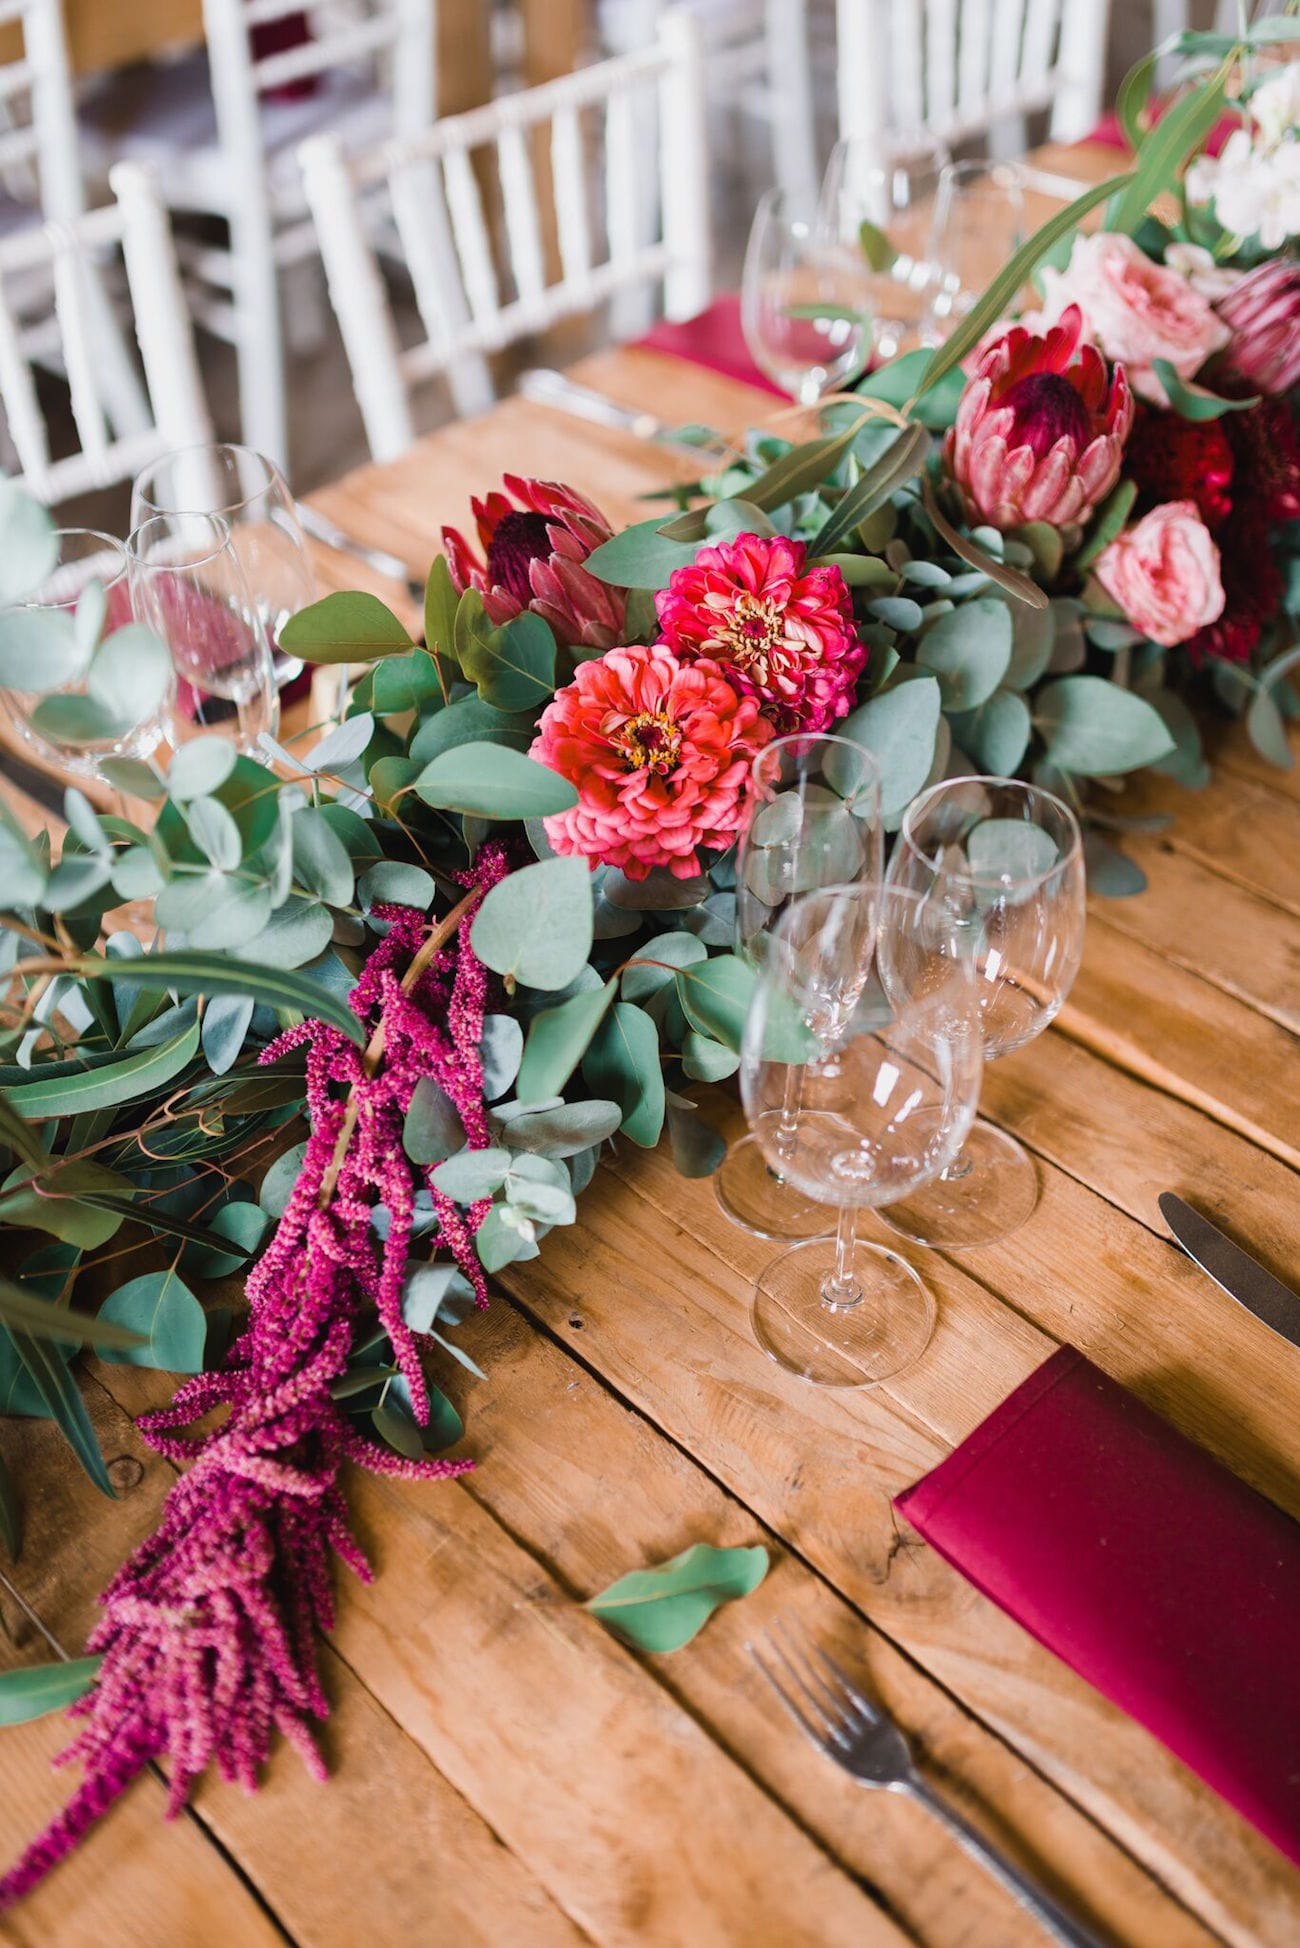 Greenery, protea and amaranthus floral runner | Credit: Matthew Carr